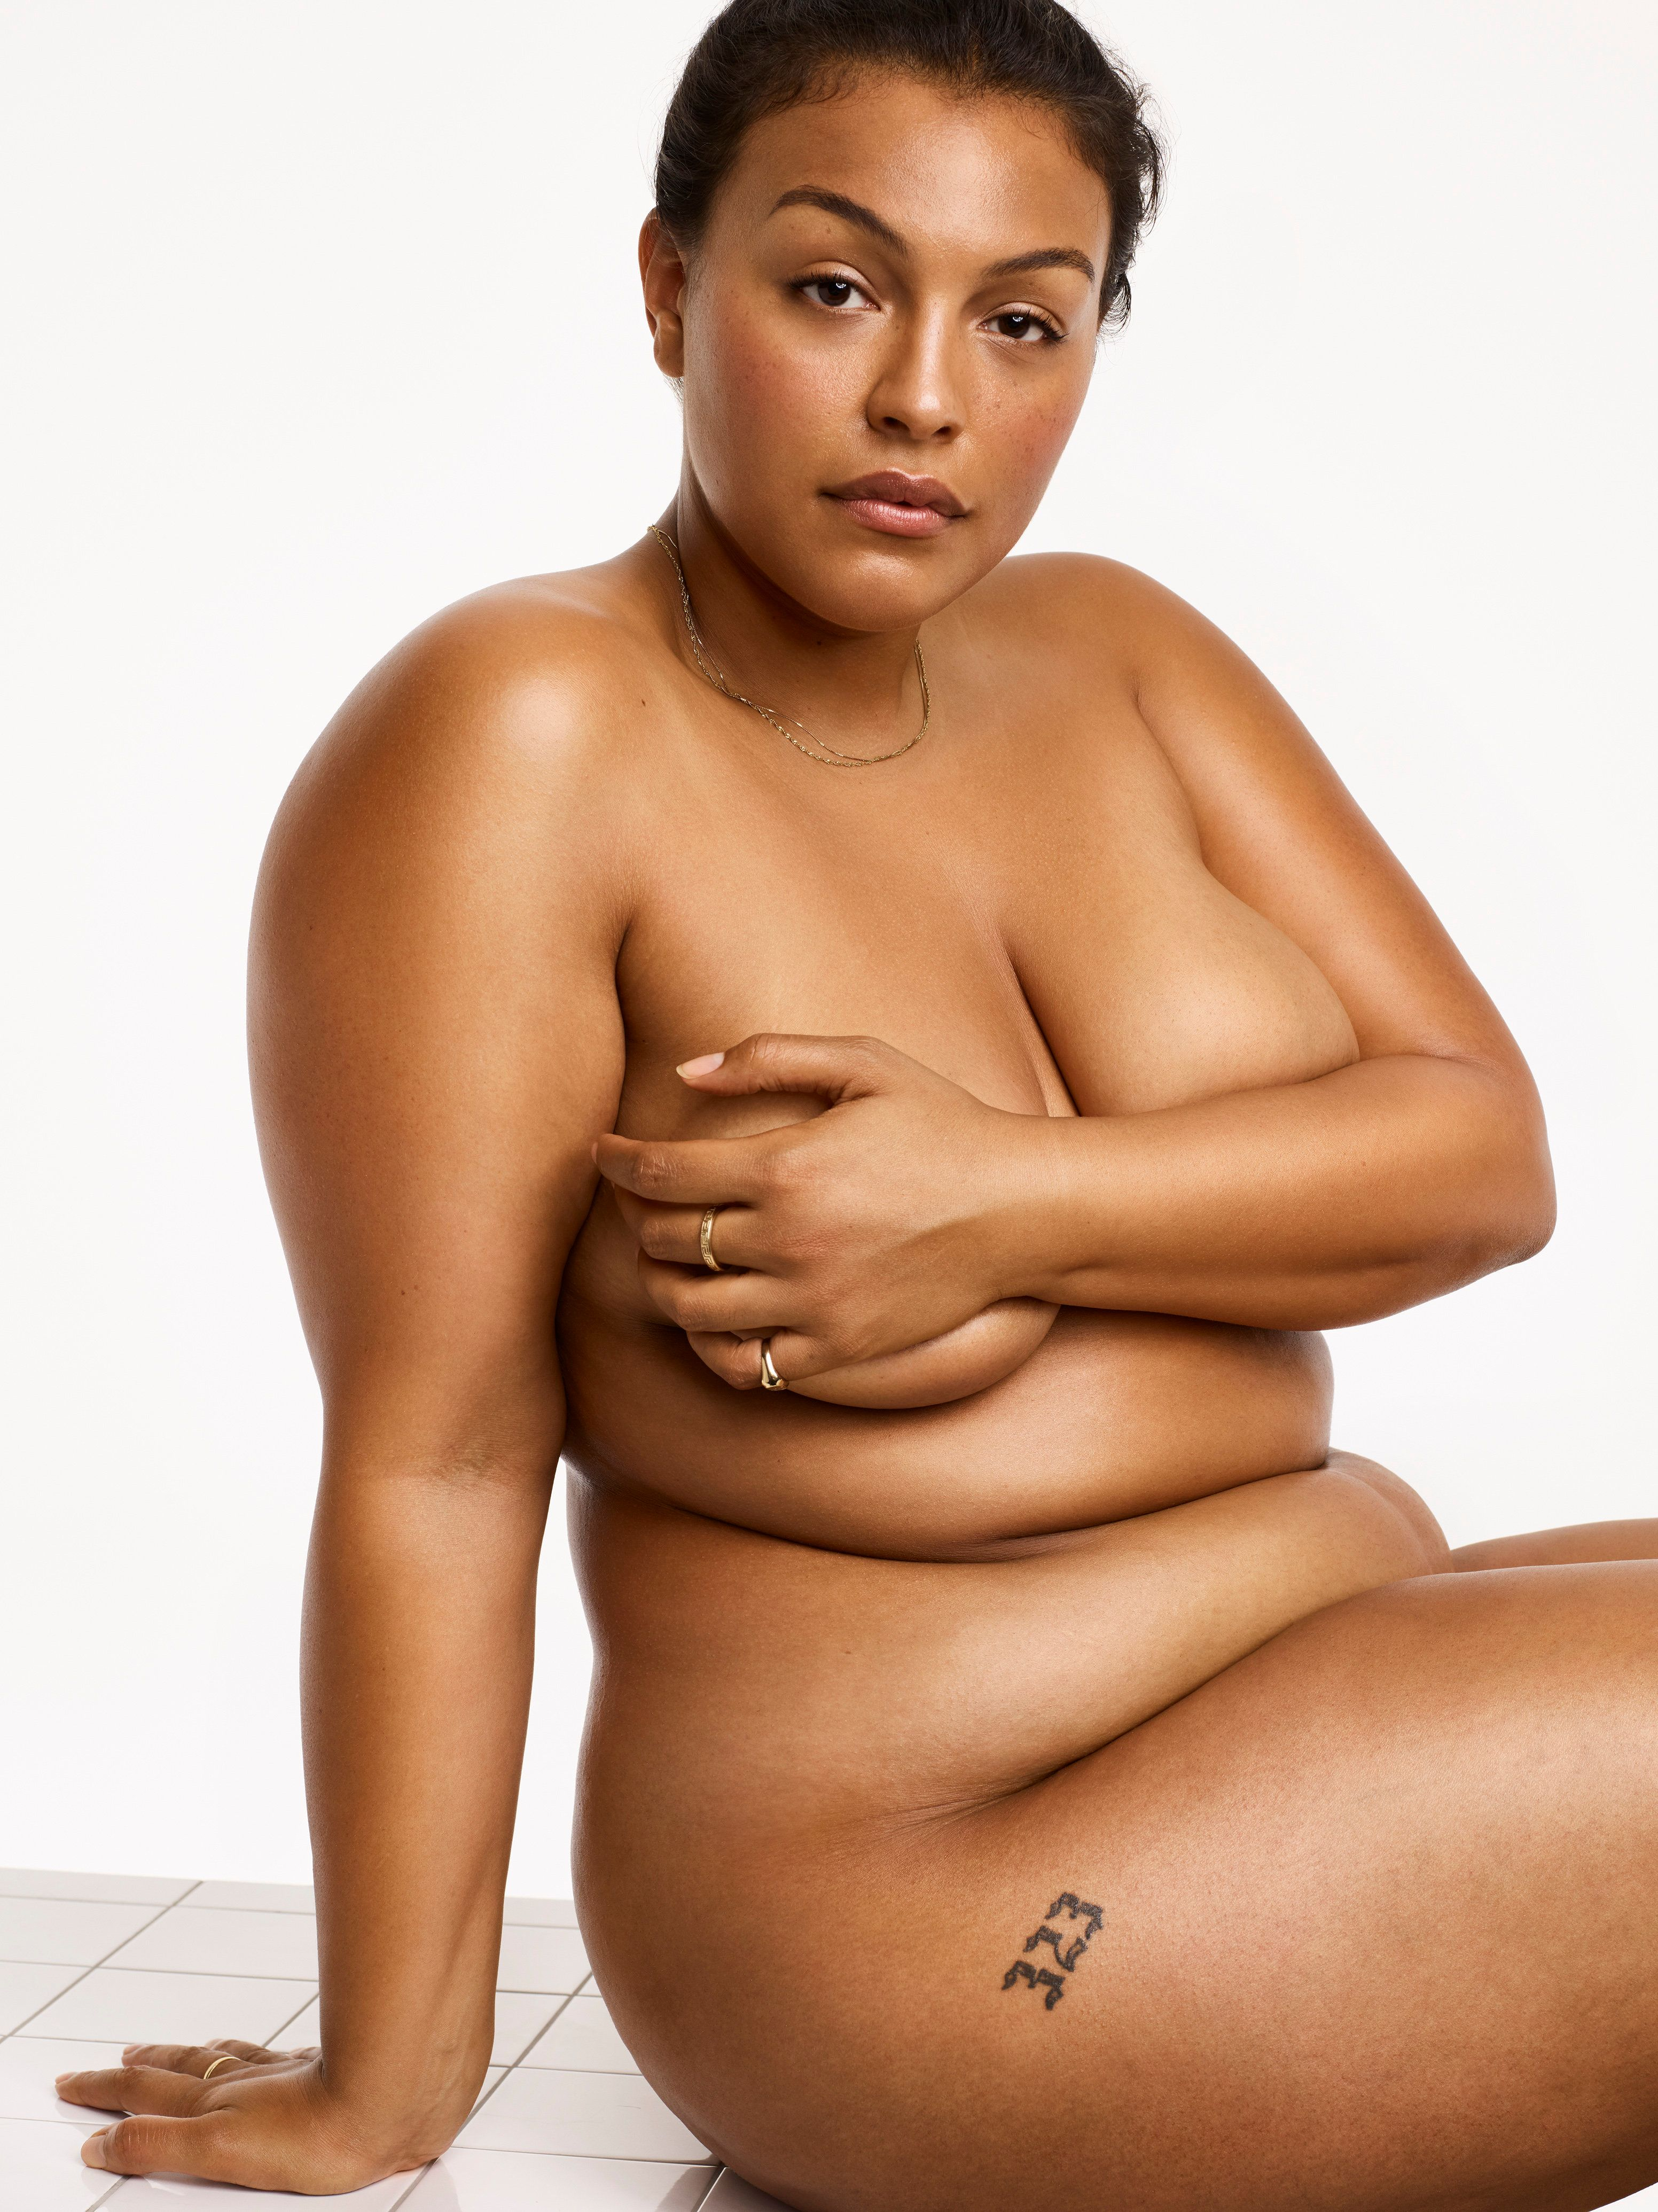 Elesser starred in the landmark Nike ad that finally acknowledged curvy women work out,